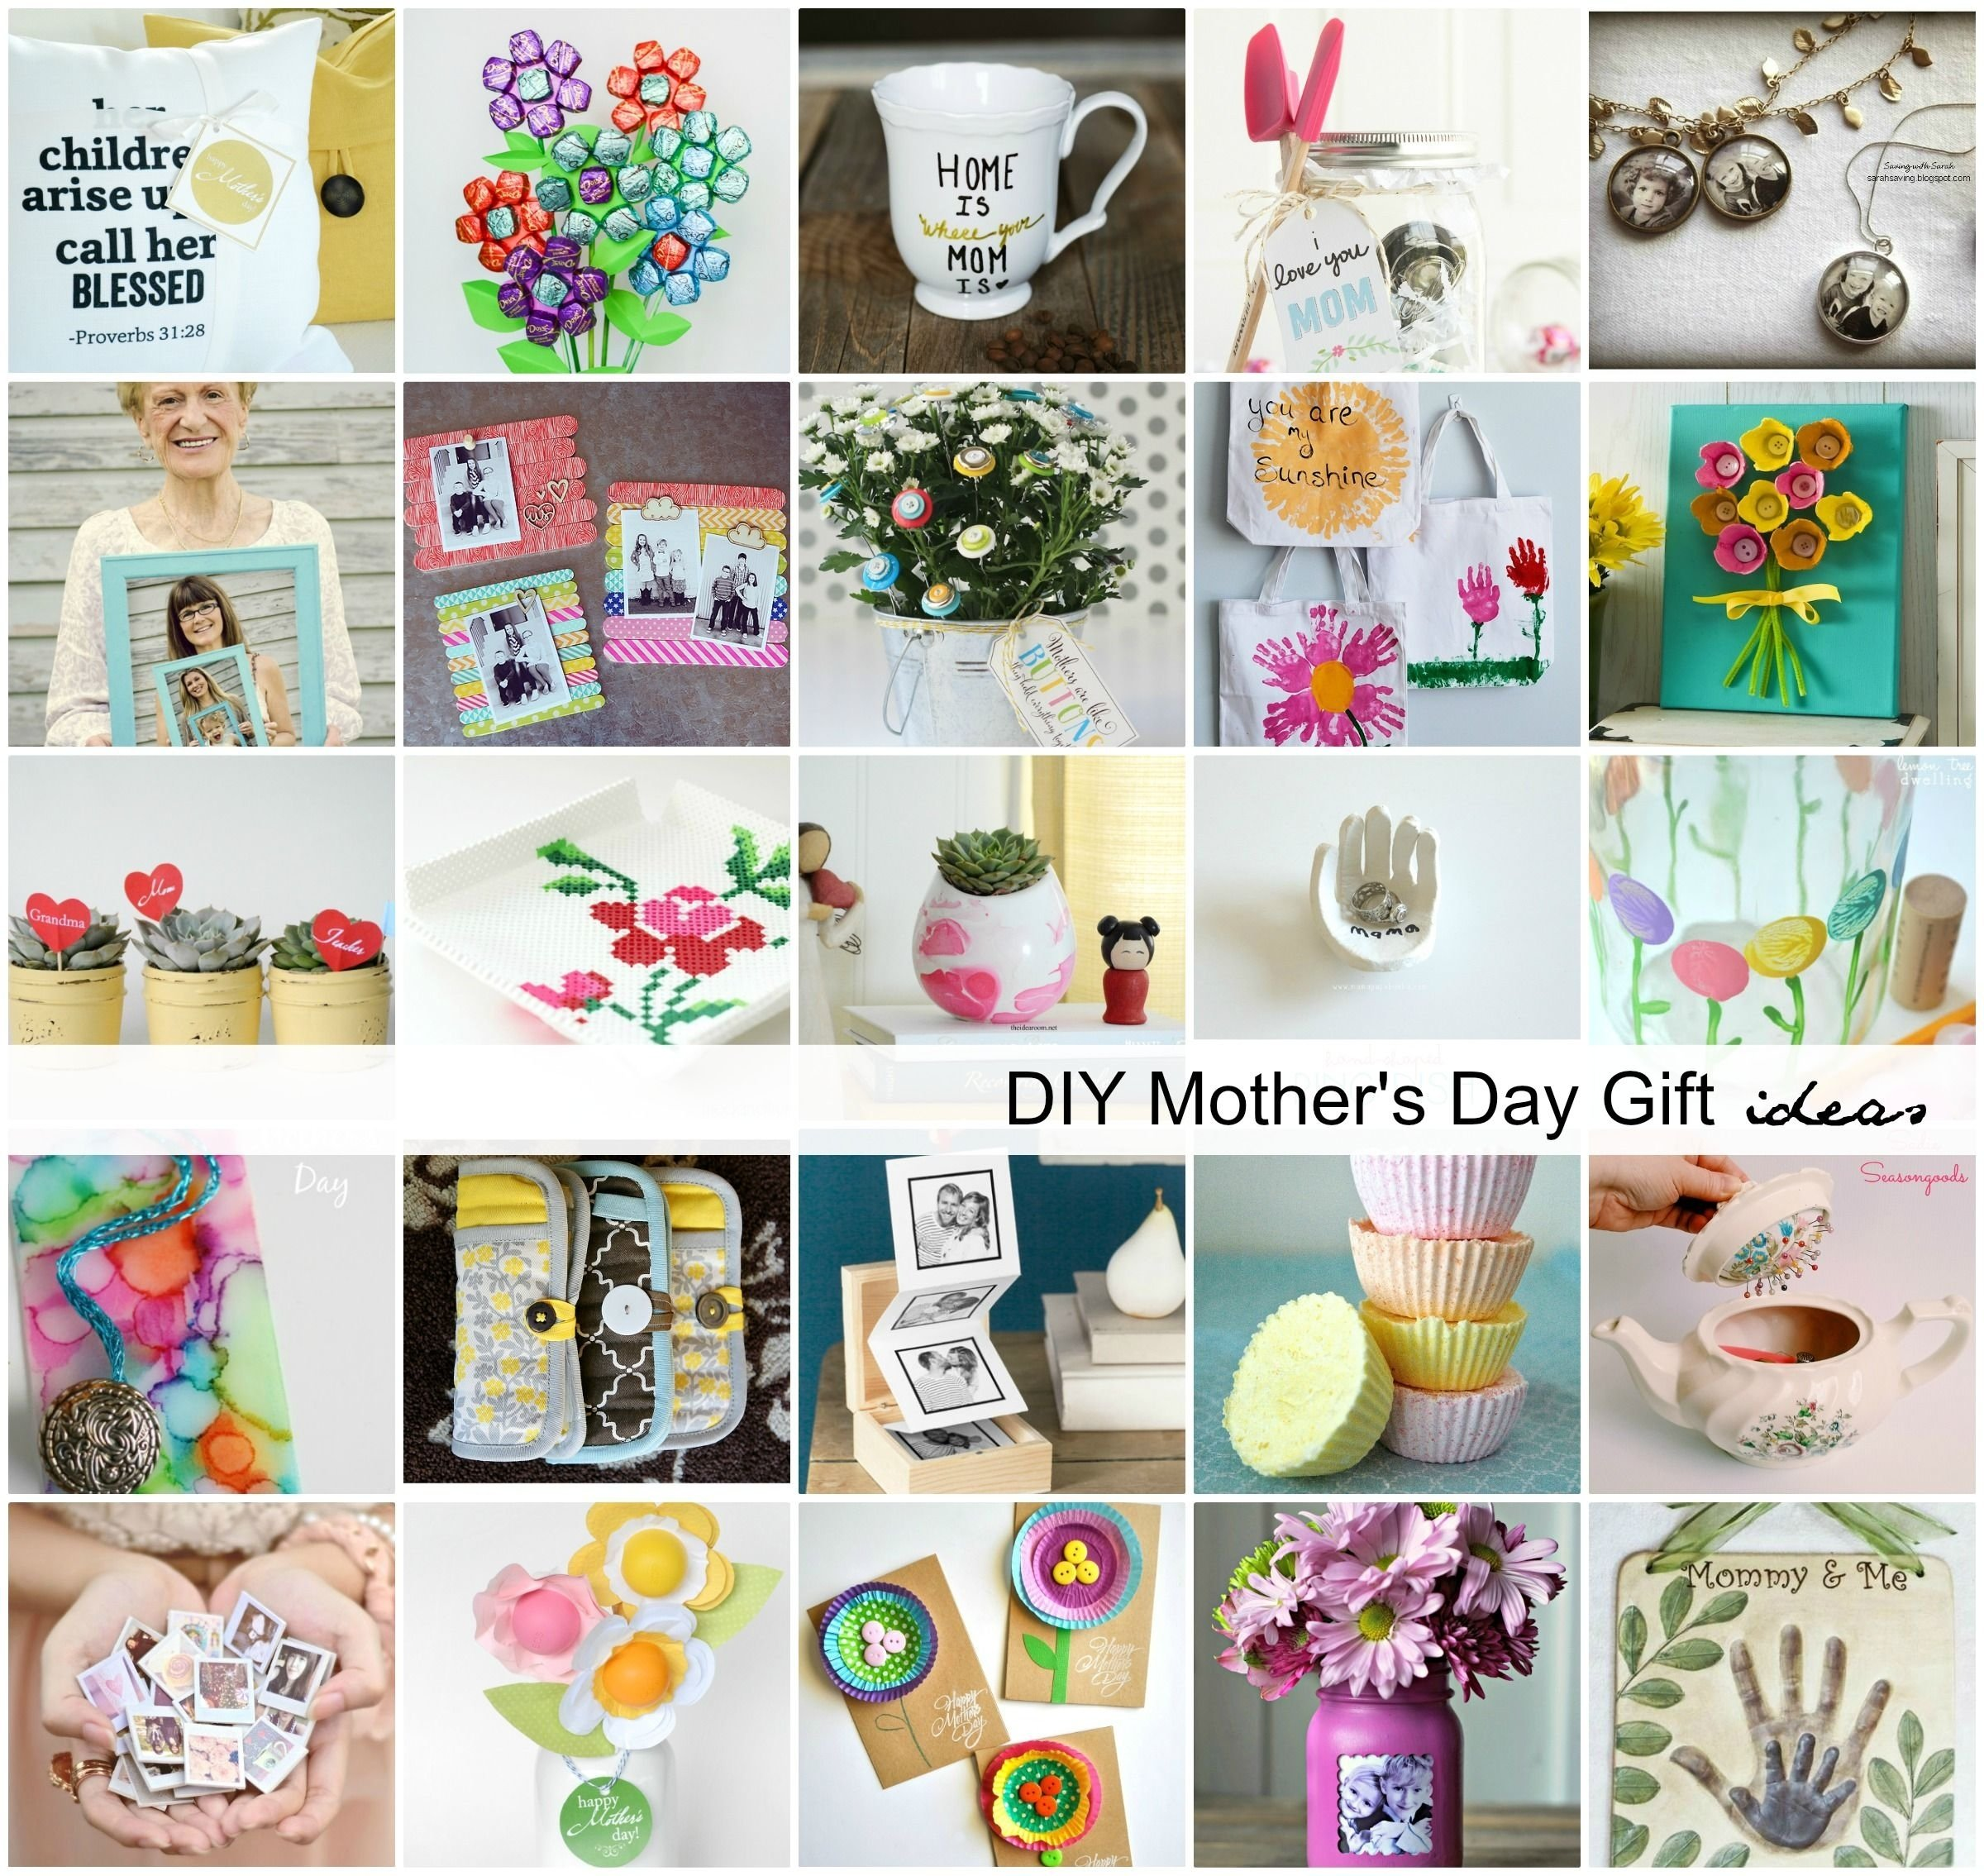 10 Cute Good Mothers Day Gifts Ideas handmade mothers day gift ideas gift craft and diy craft projects 4 2021